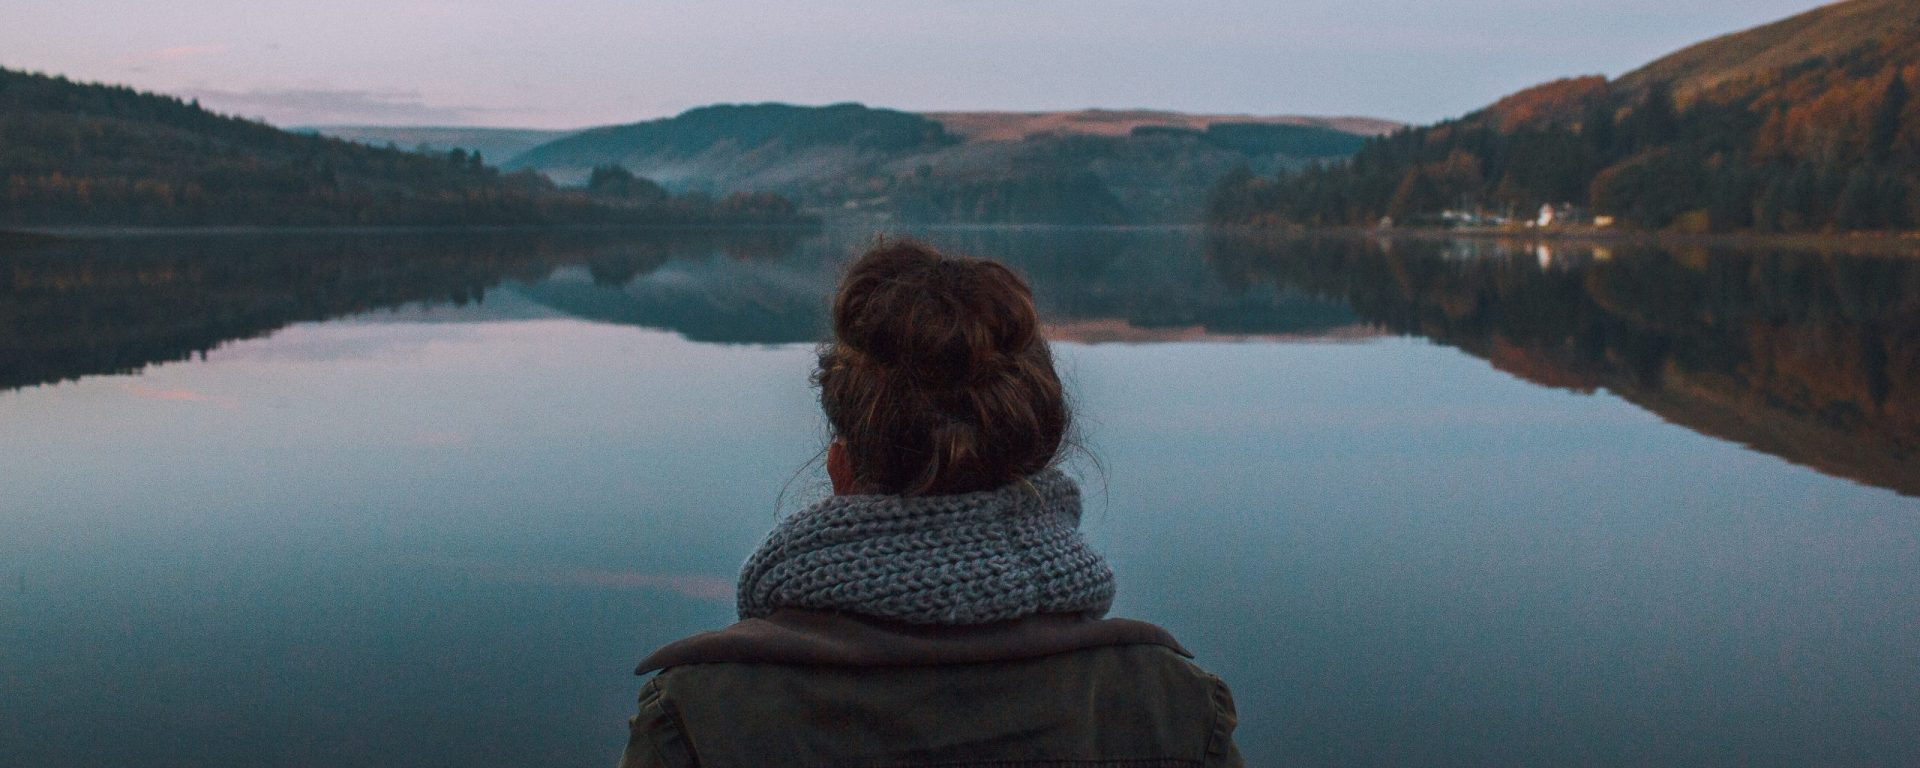 effects of social isolation on mental health